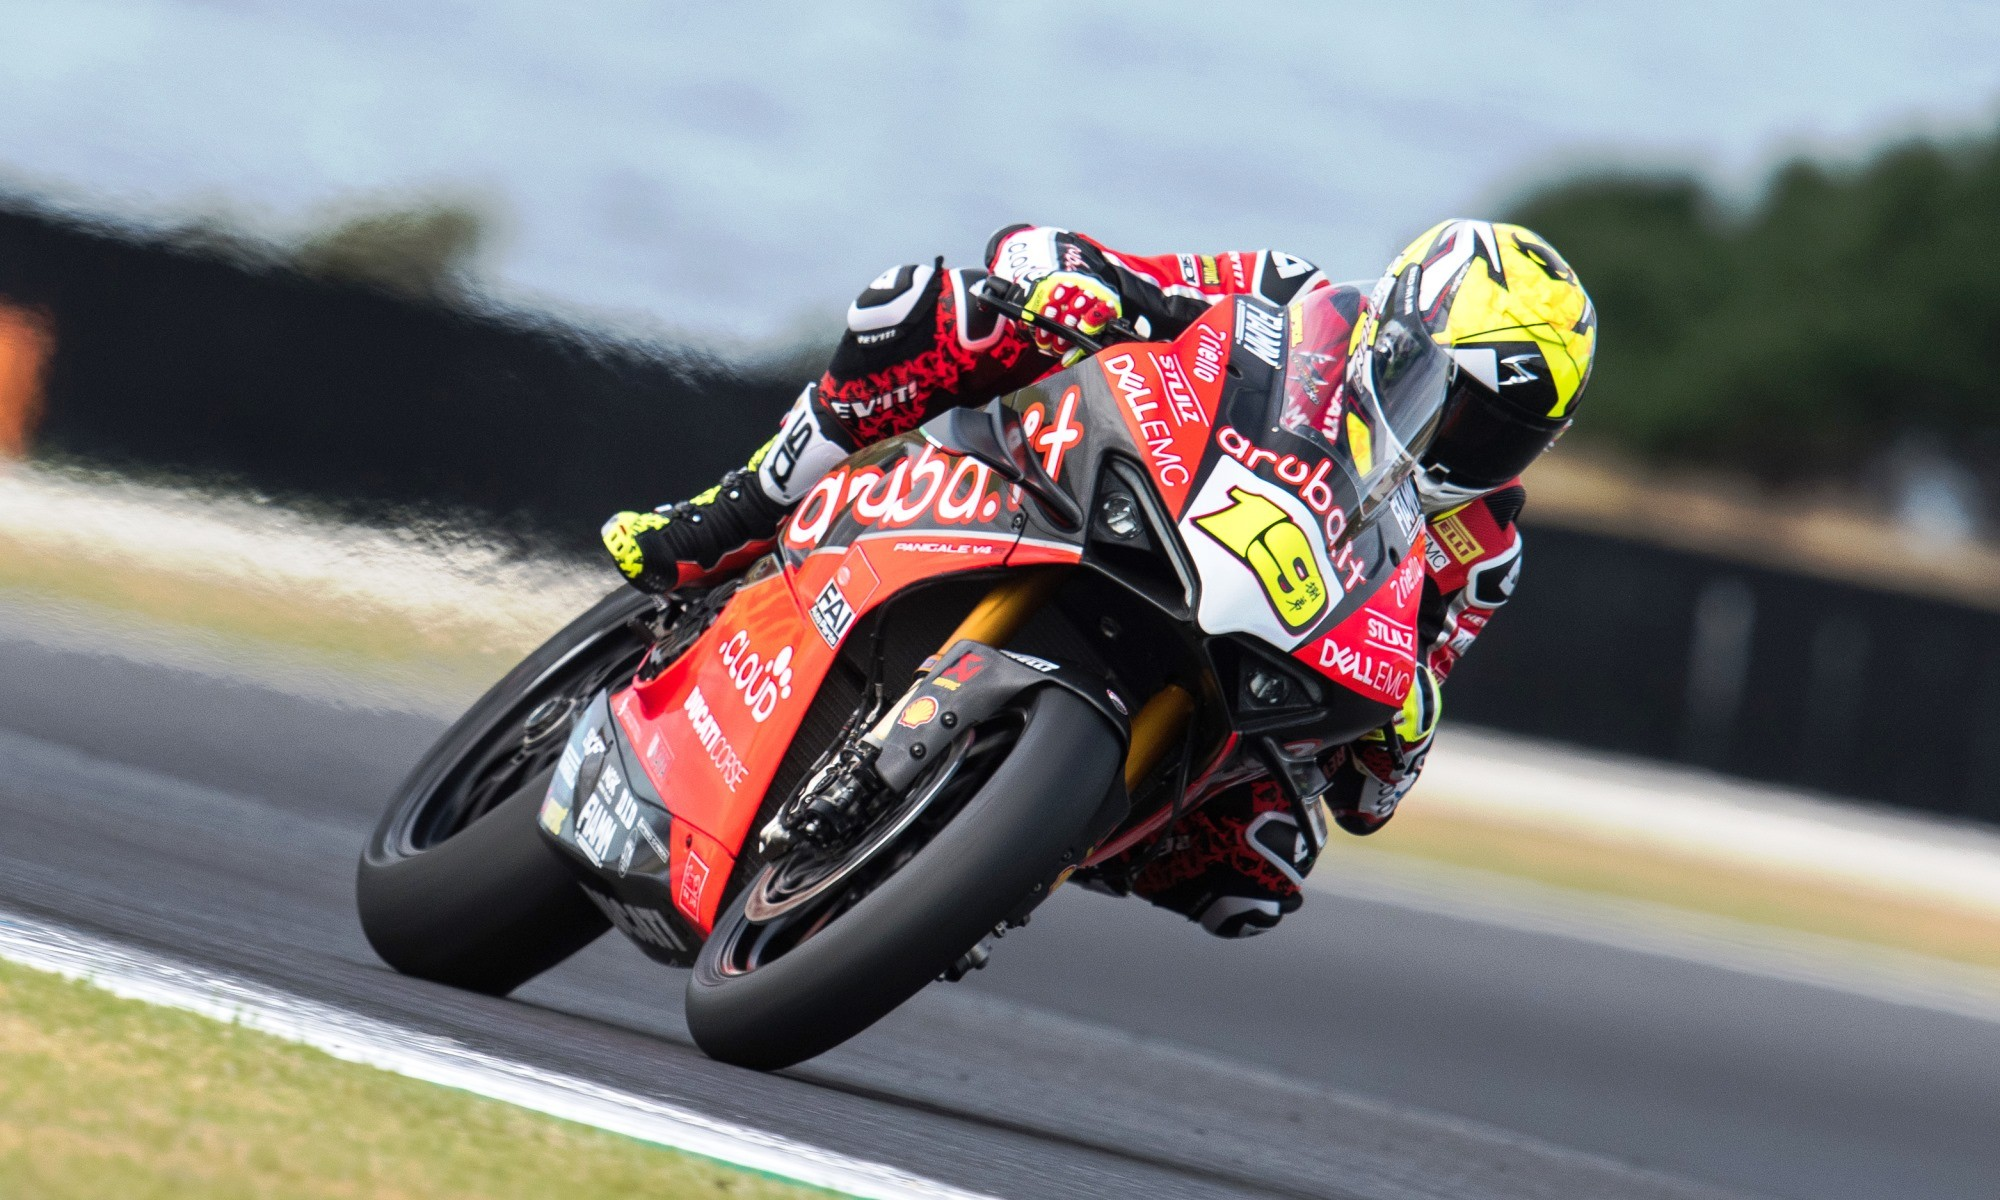 Alvaro Bautista at Philip Island